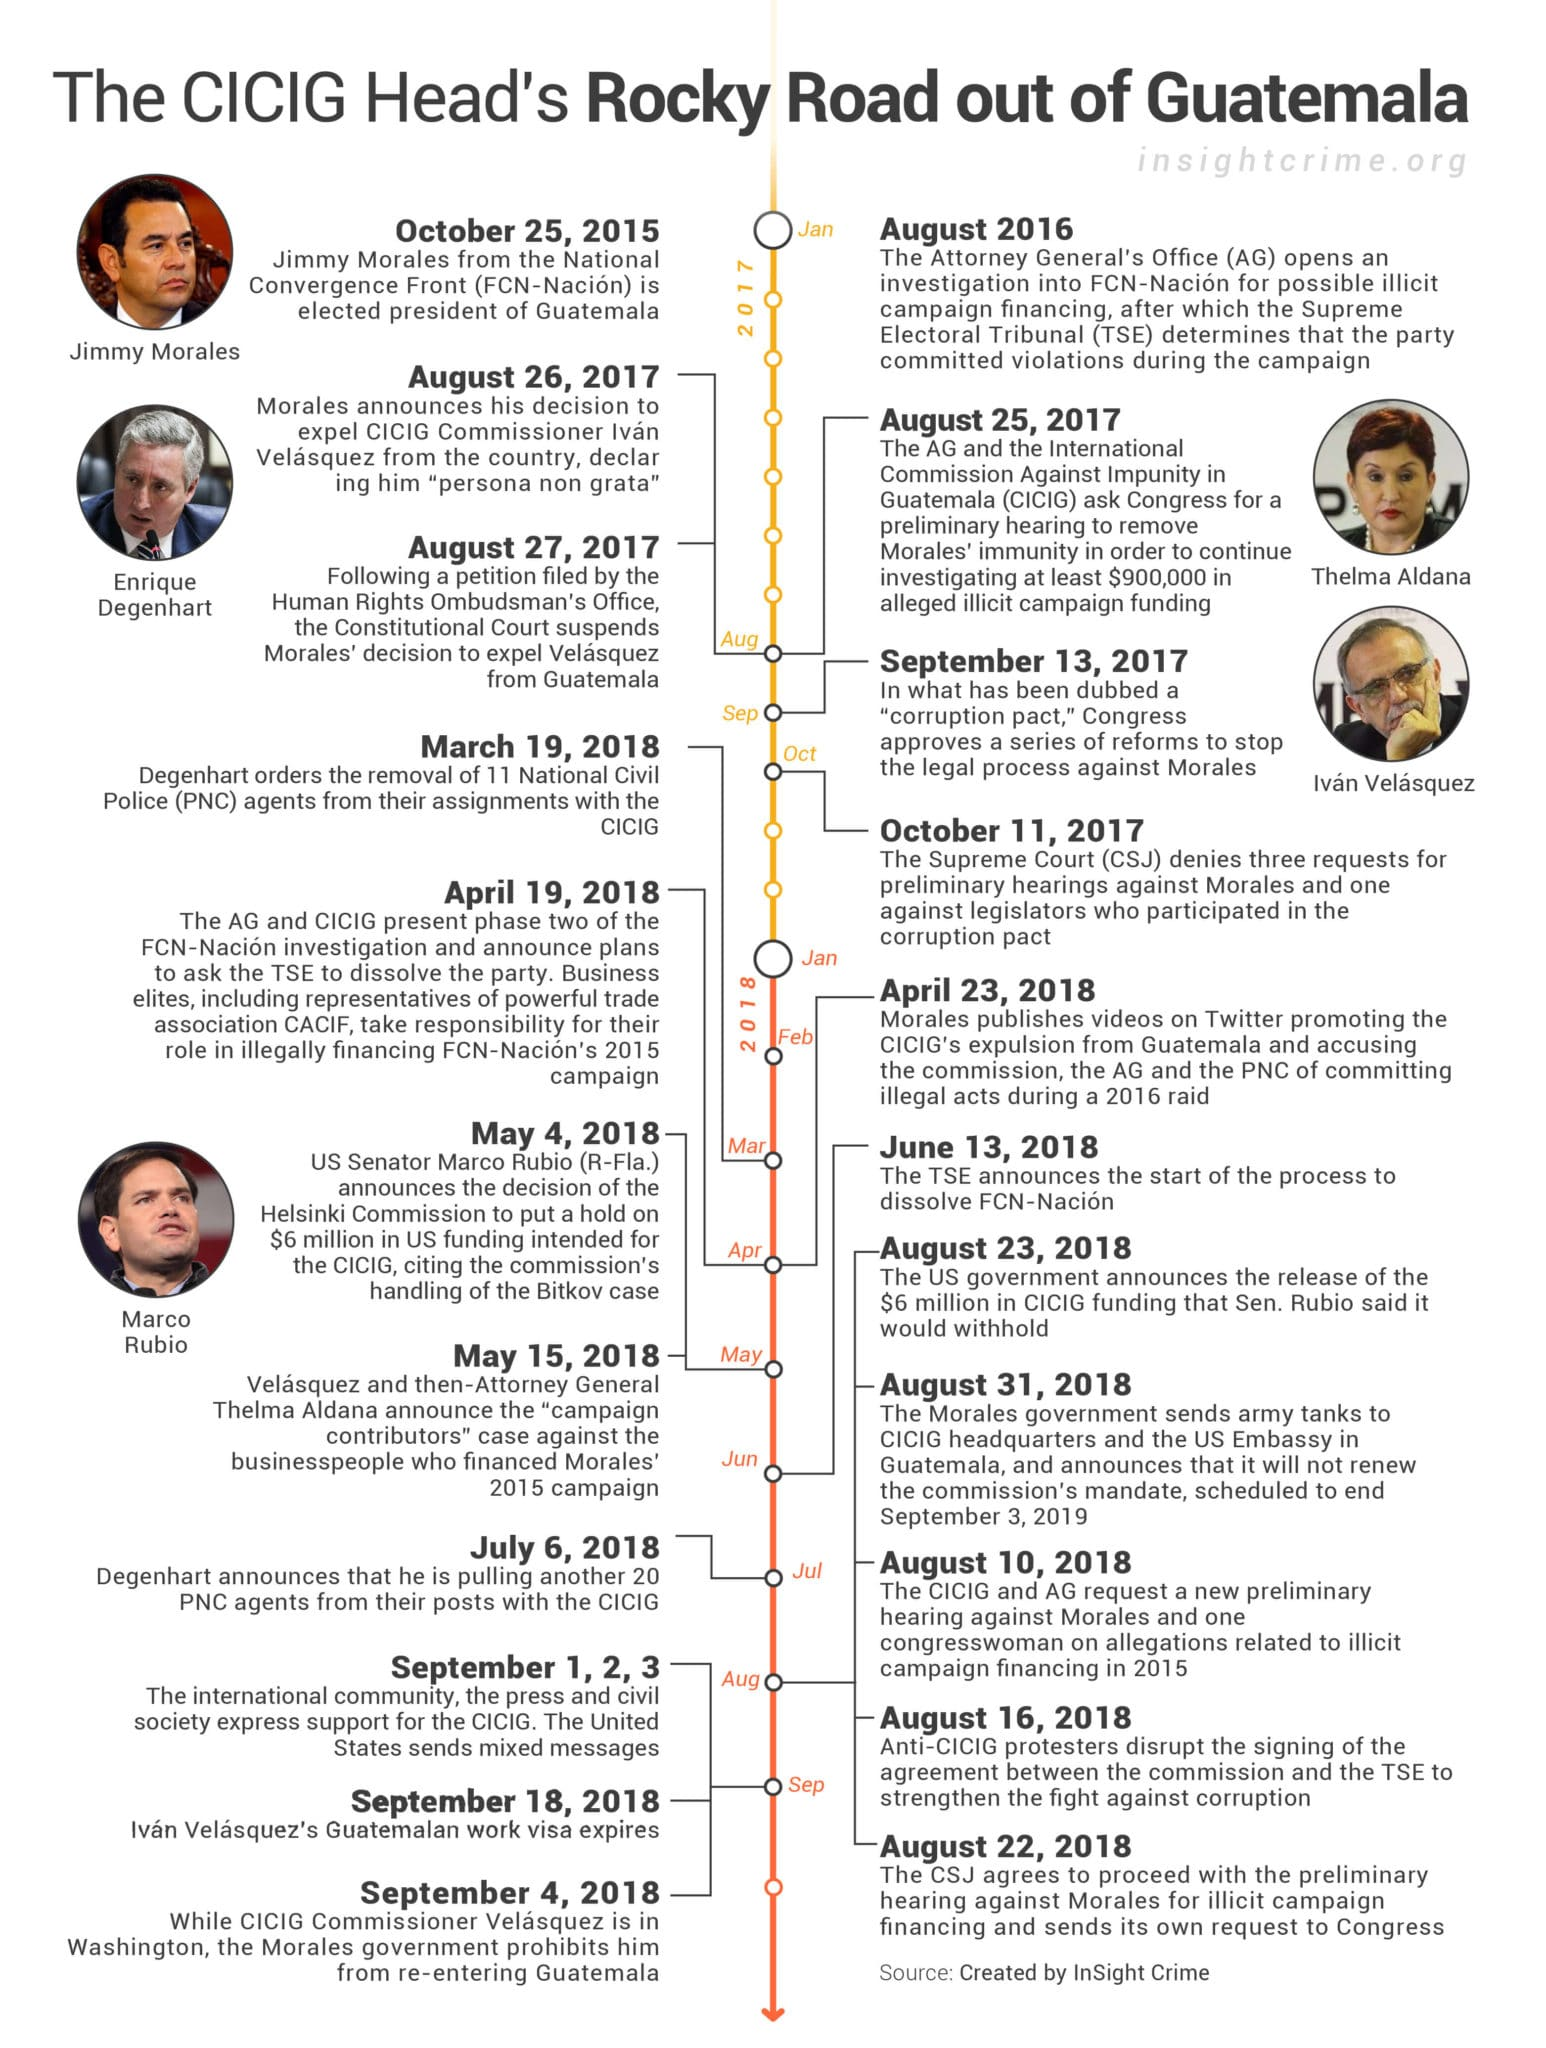 Timeline of CICIG head Iván Velásquez's road out of Guatemala